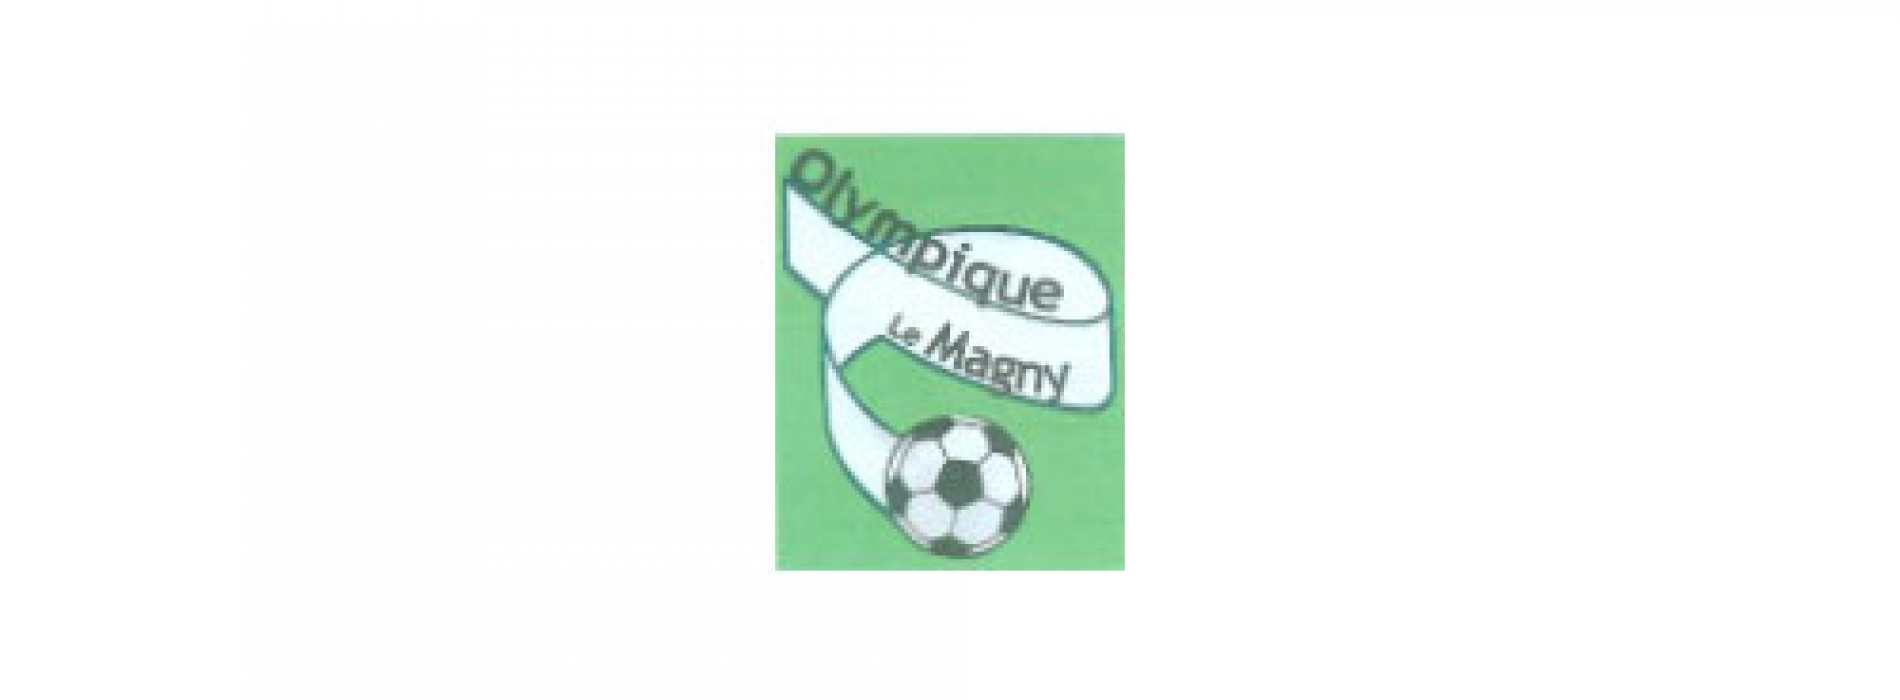 Olympique Le Magny